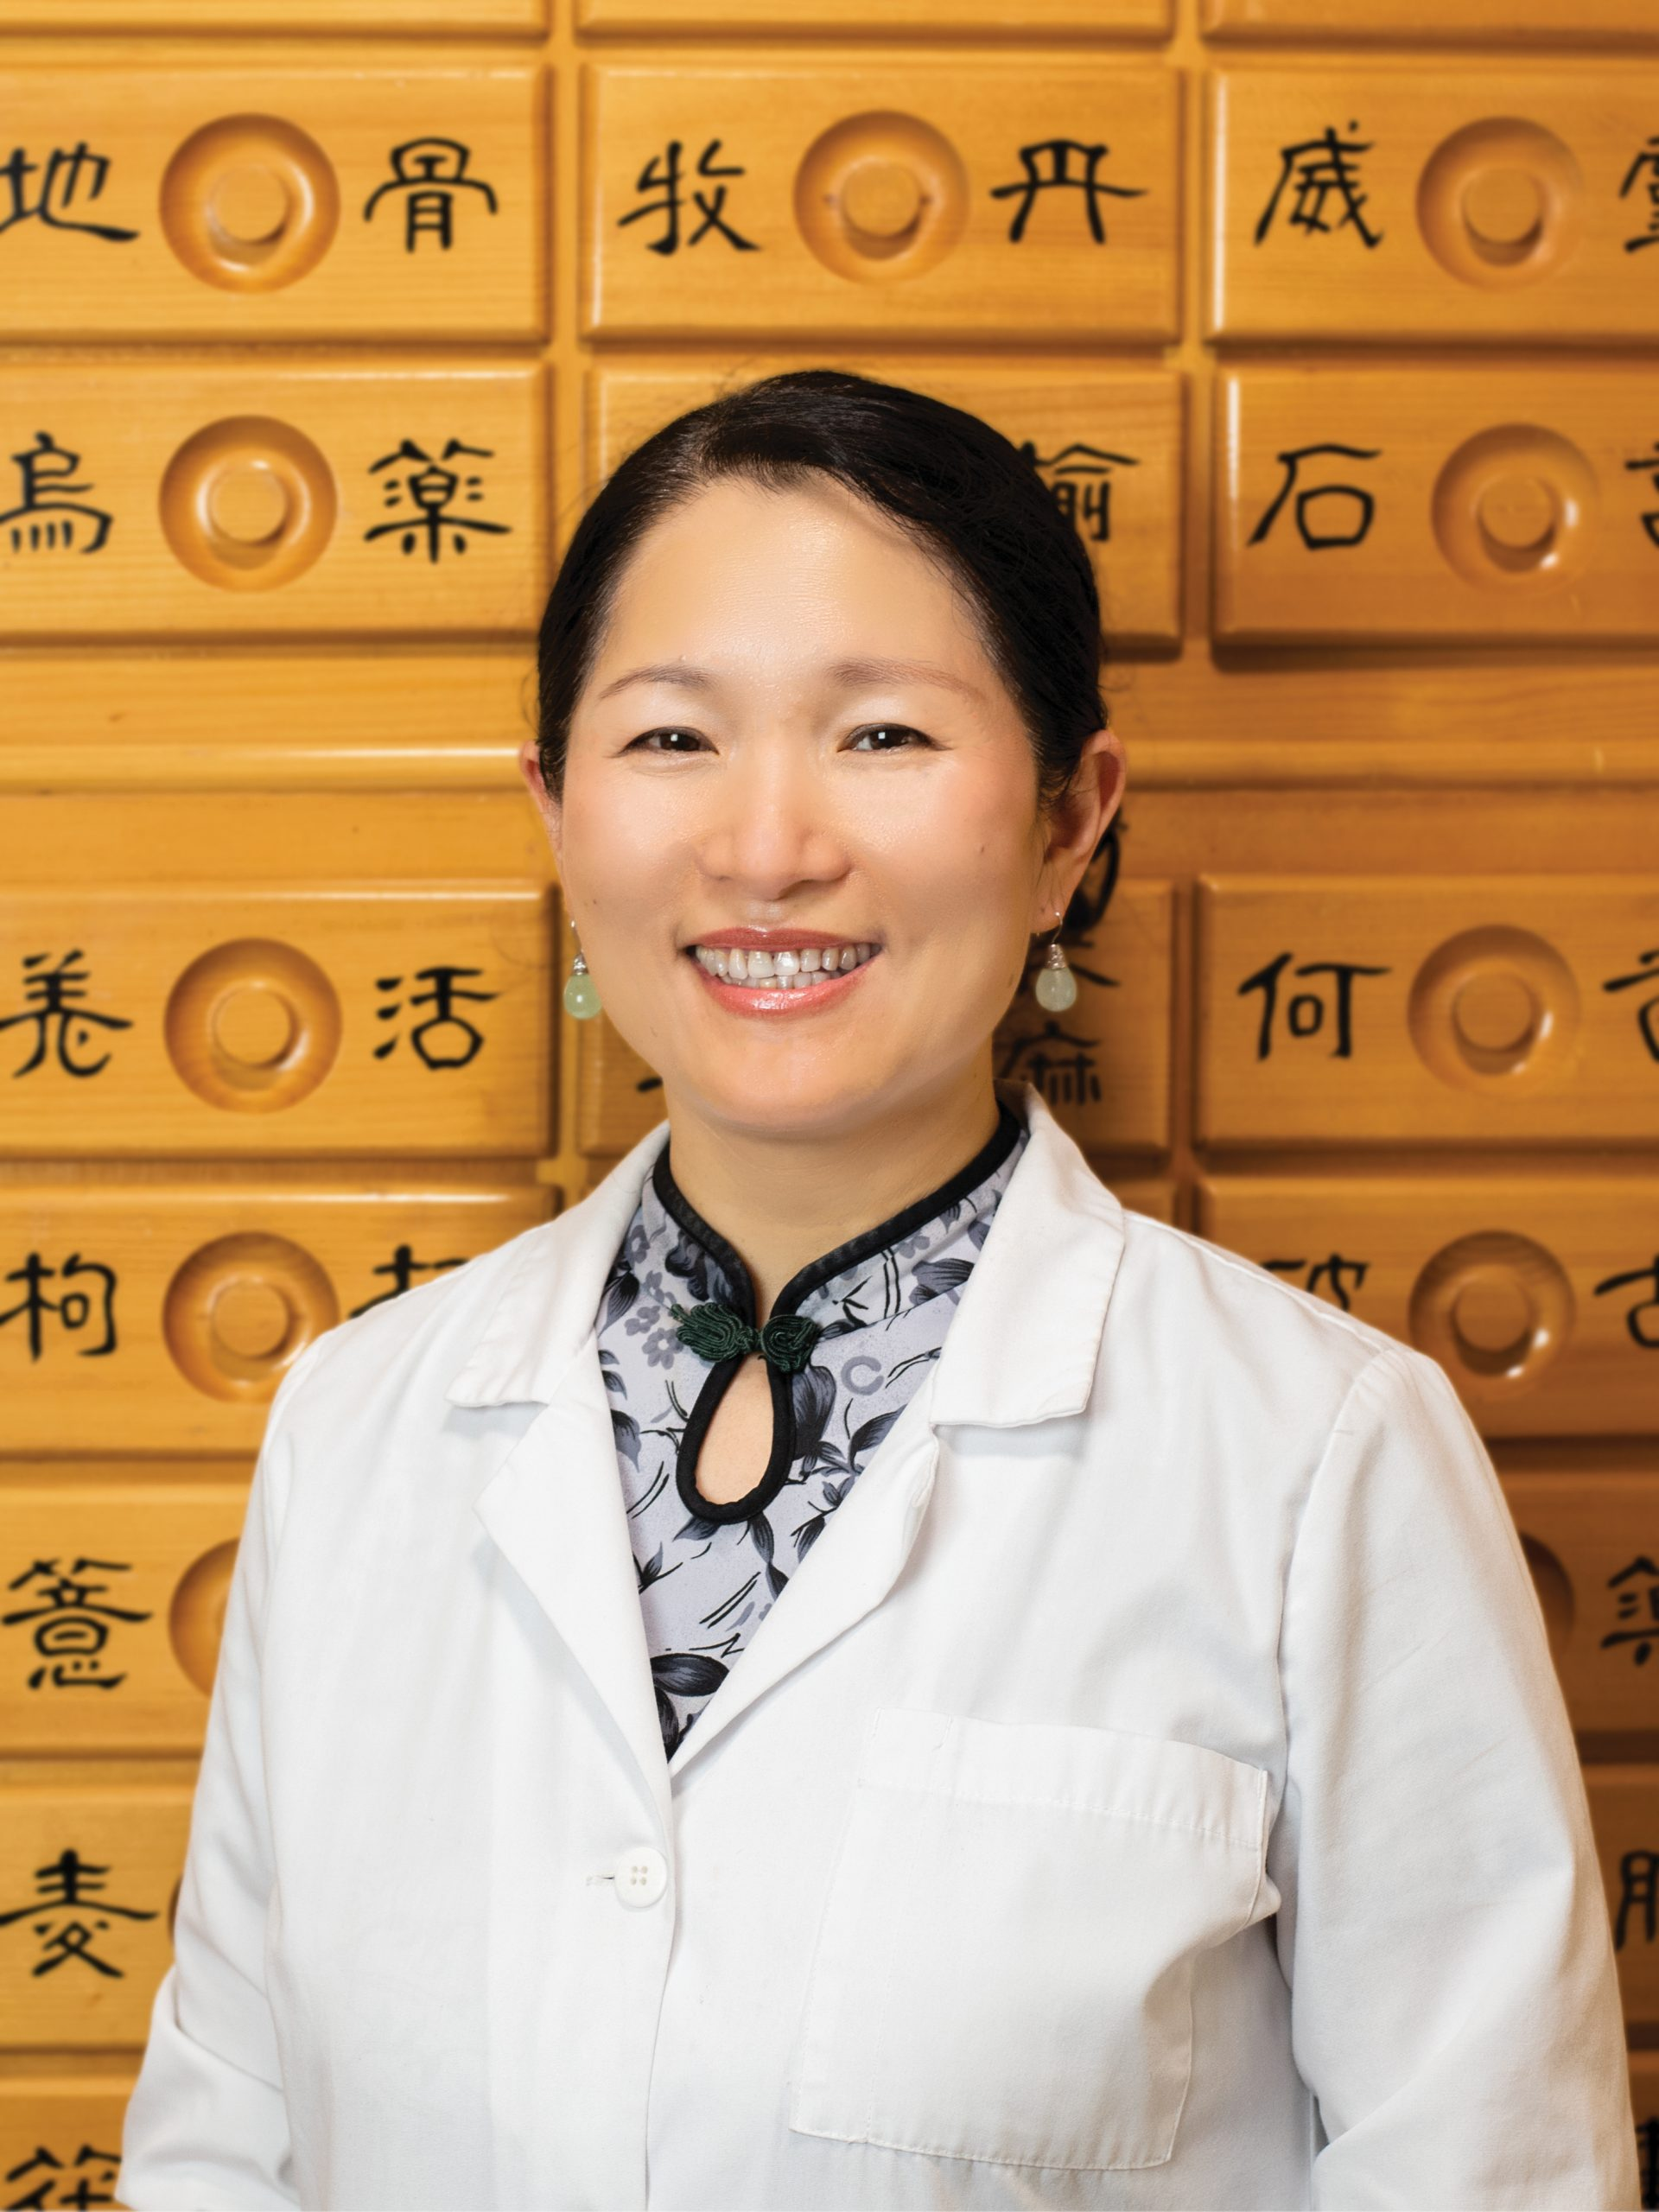 Traditional Chinese medicine practitioner, Dr. Serene Feng